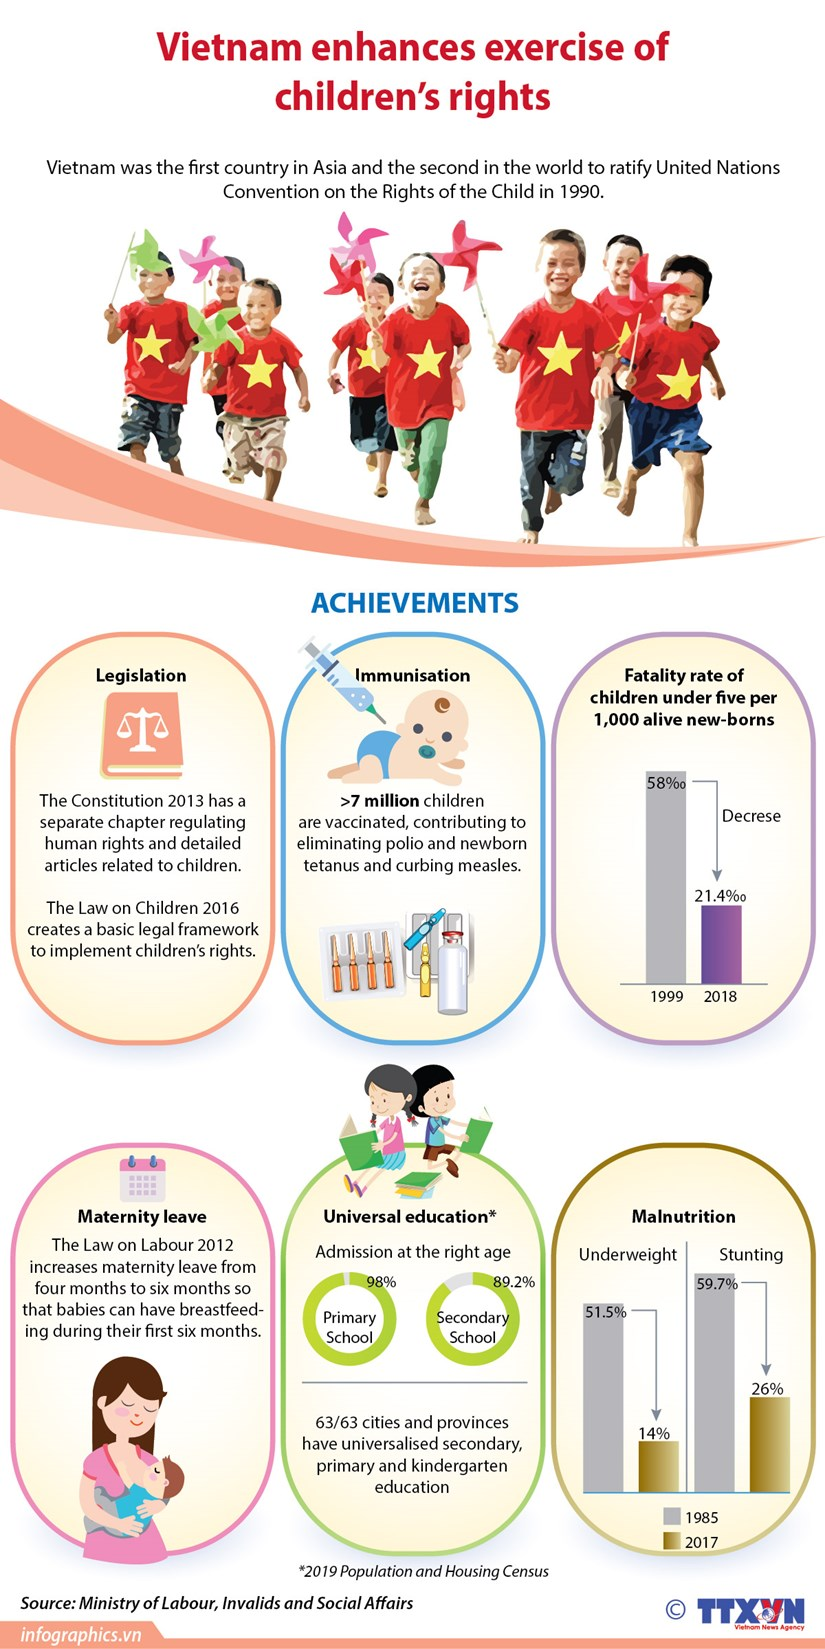 Vietnam enhances exercise of children's rights hinh anh 1